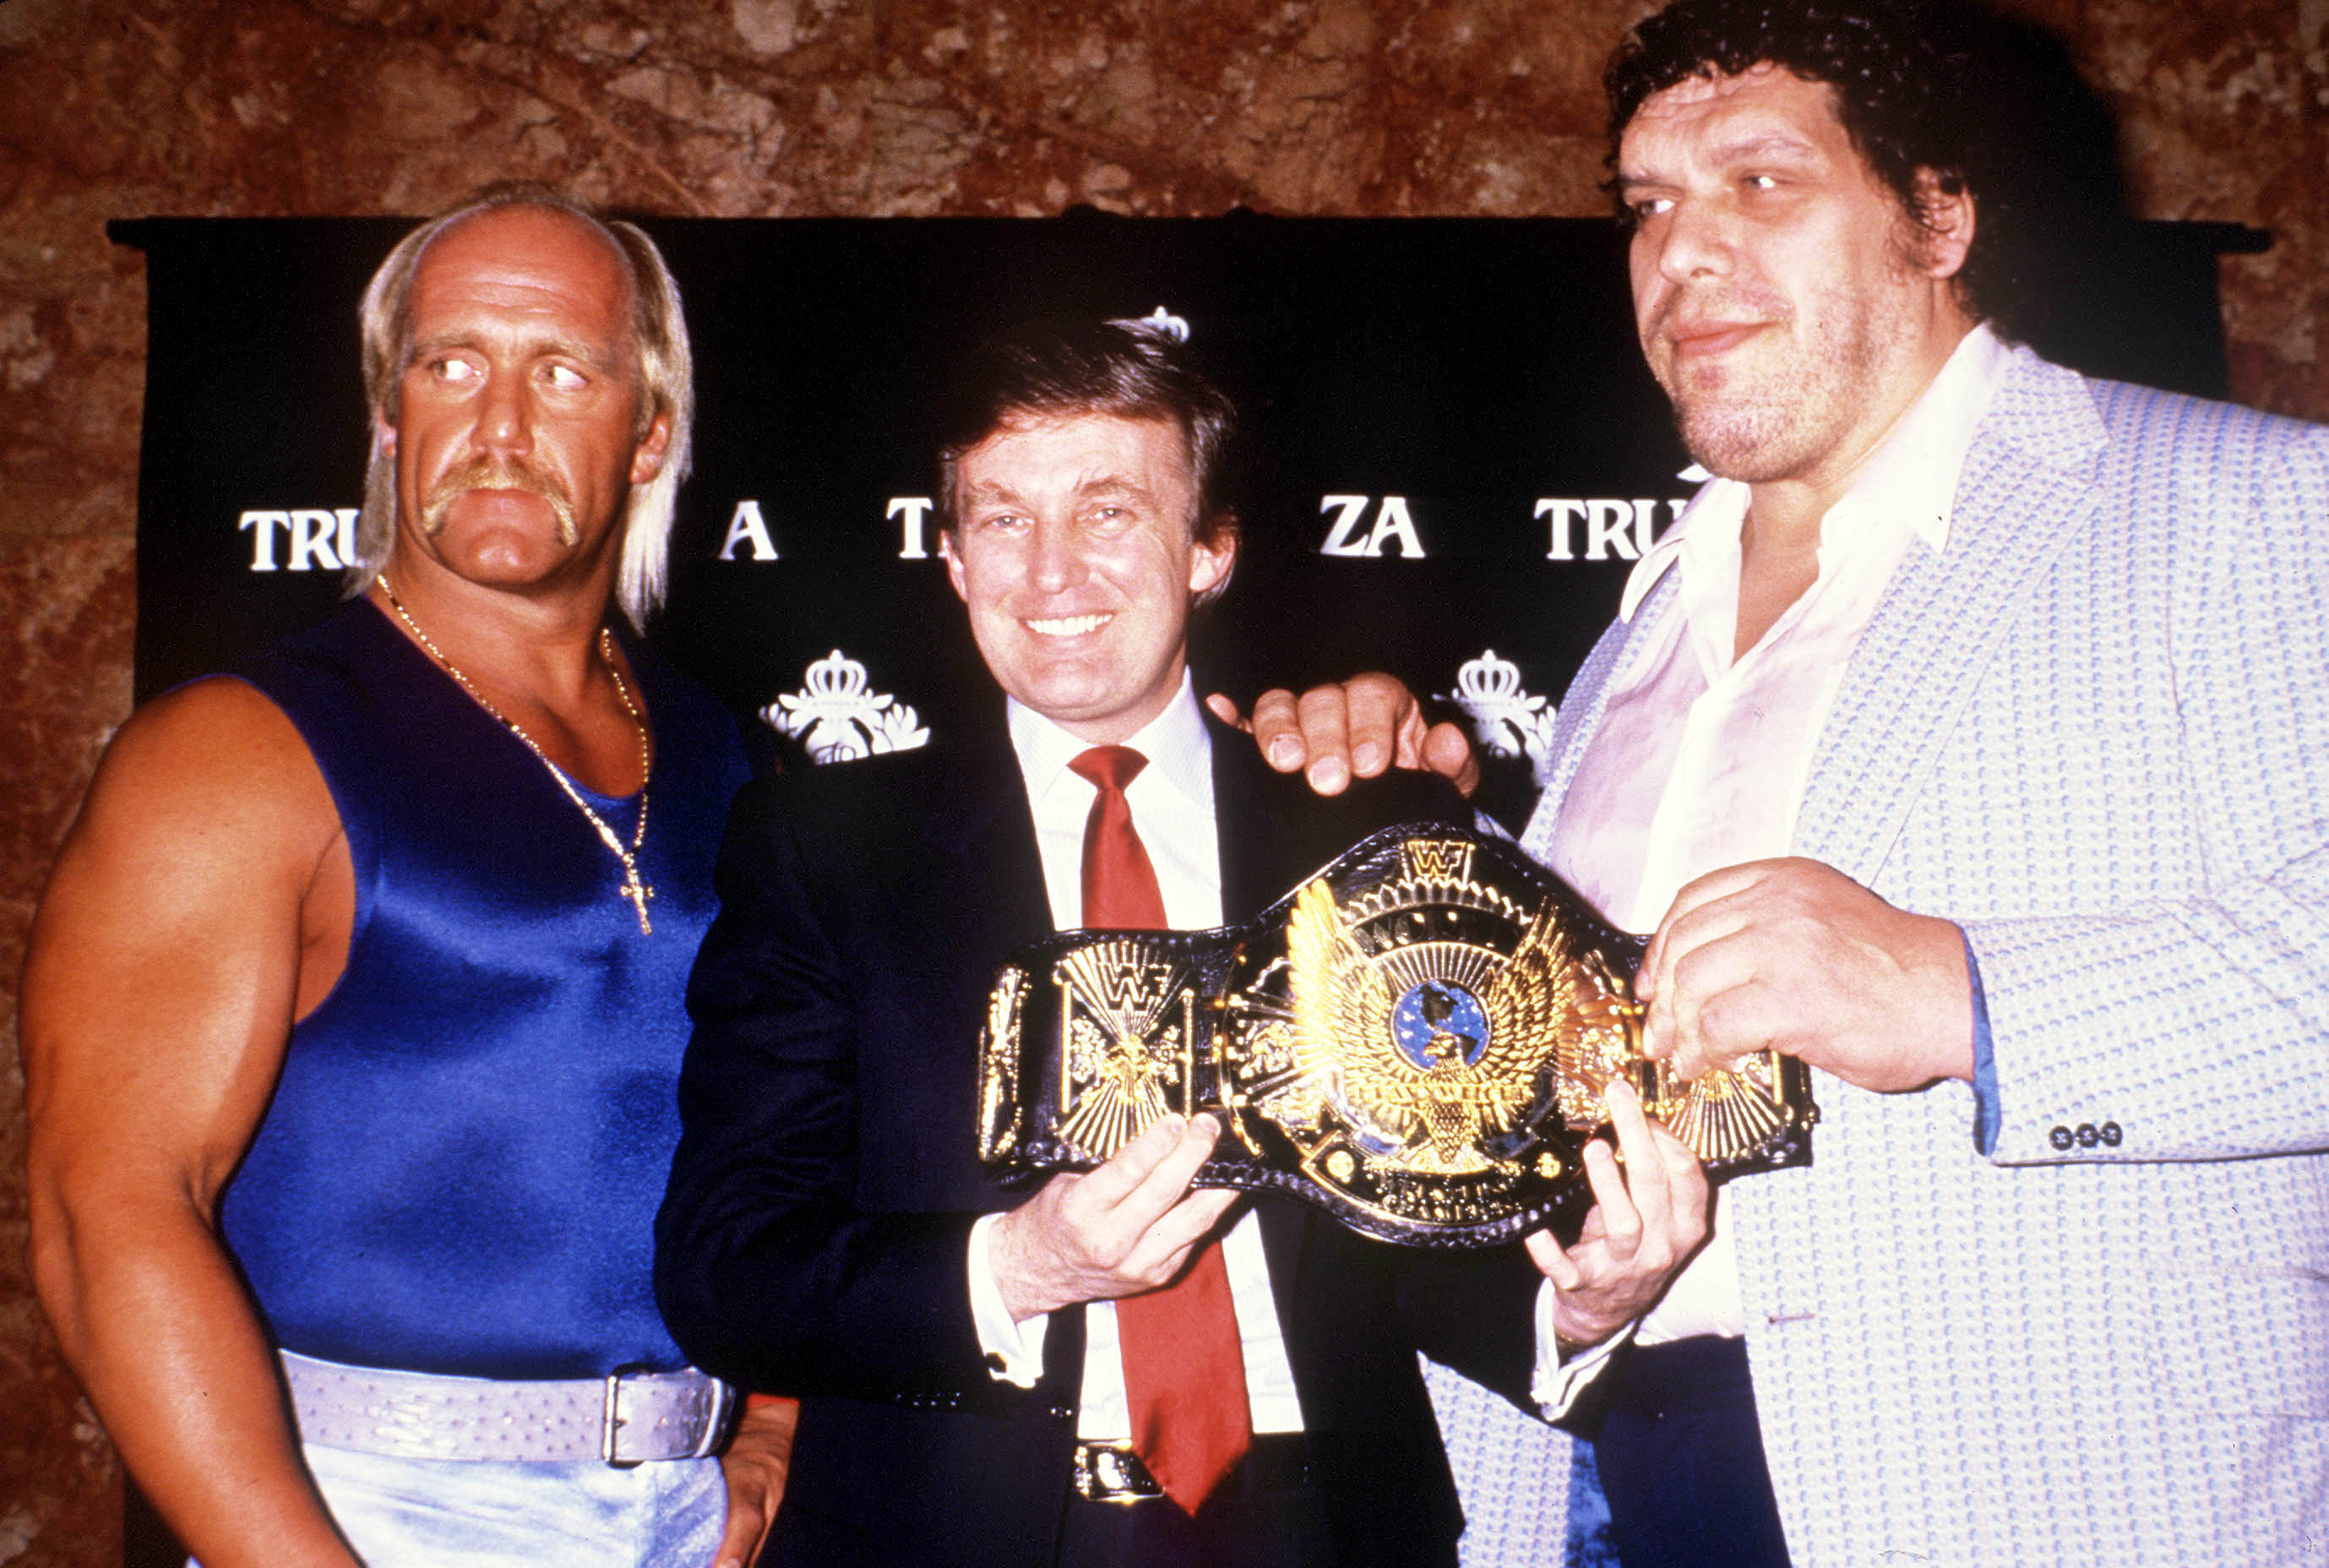 Professional Wrestler Hulk Hogan and Andre the Giant With Donald Trump.